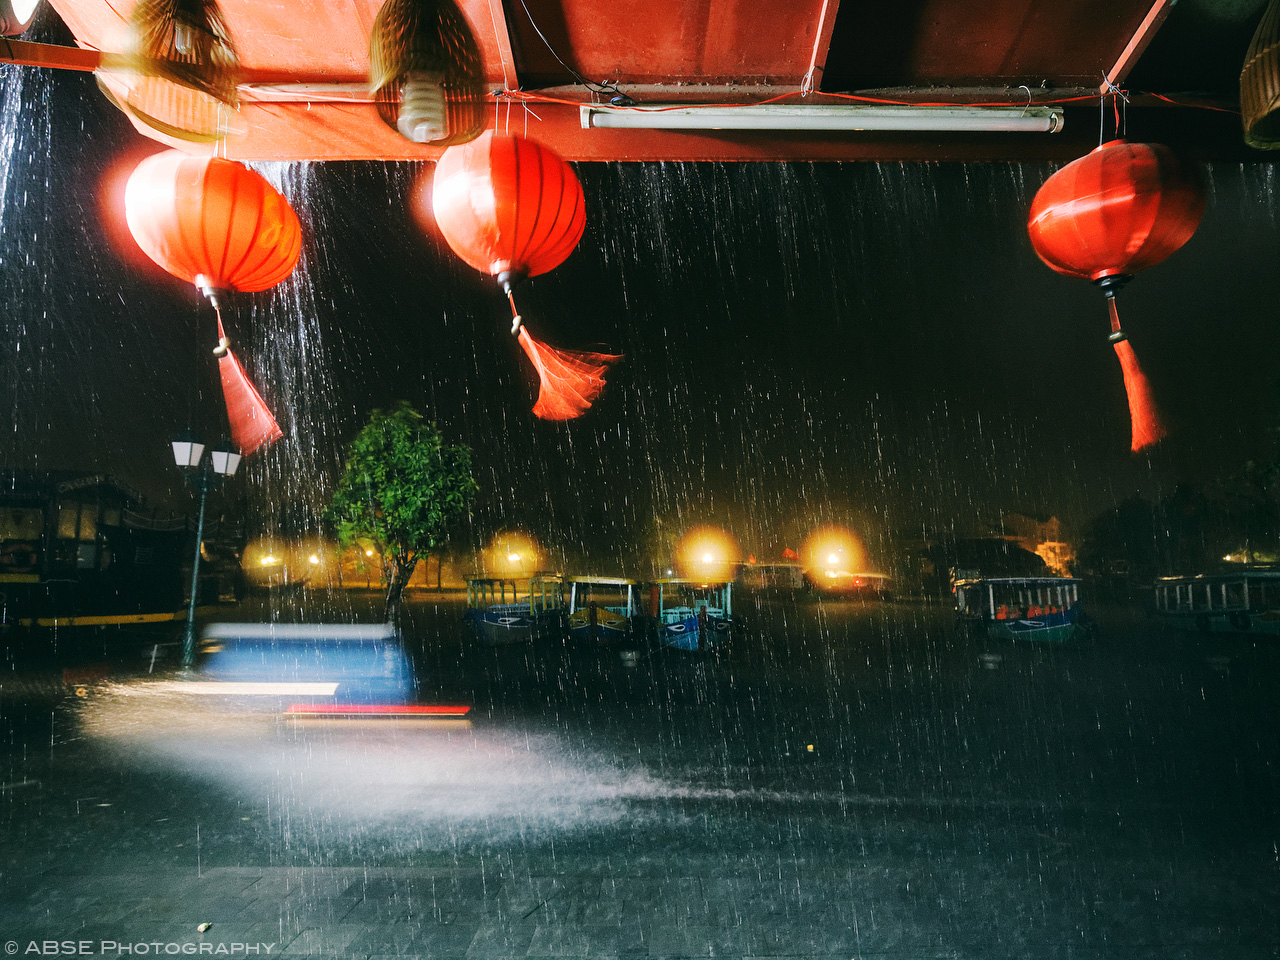 IMAGE: http://i2.wp.com/blog.absephotography.com/wp-content/uploads/2017/09/hoian-hoi-an-vietnam-water-flood-light-night-shot-long-exposure-scooter.jpg